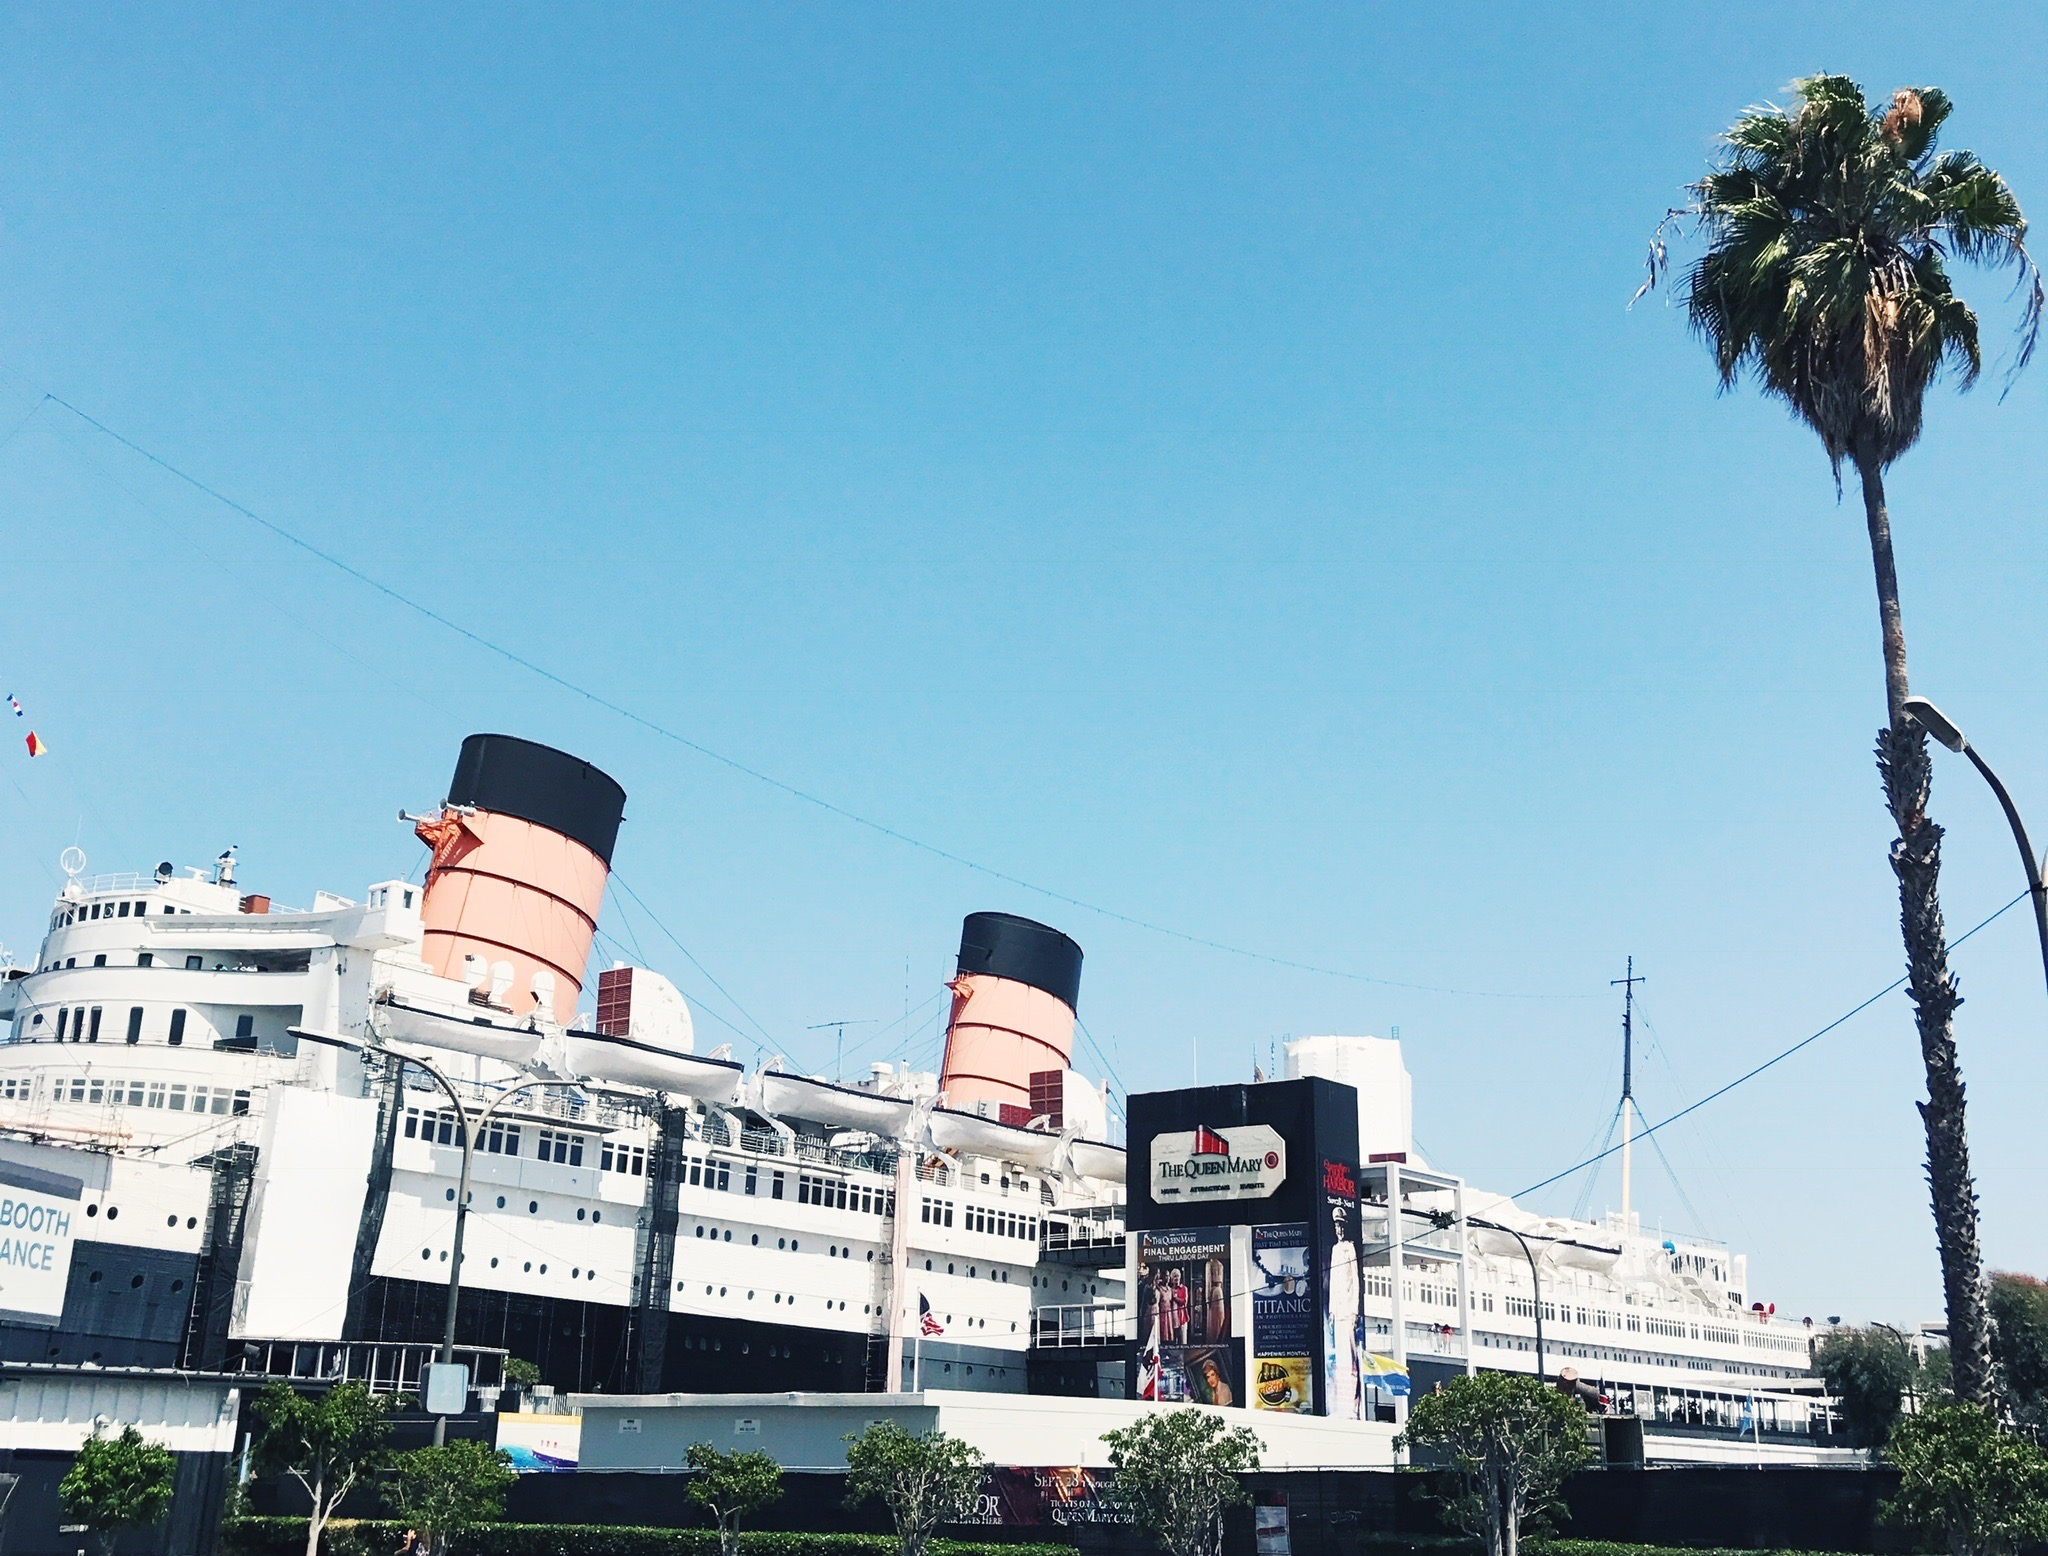 Exterior of the Queen Mary